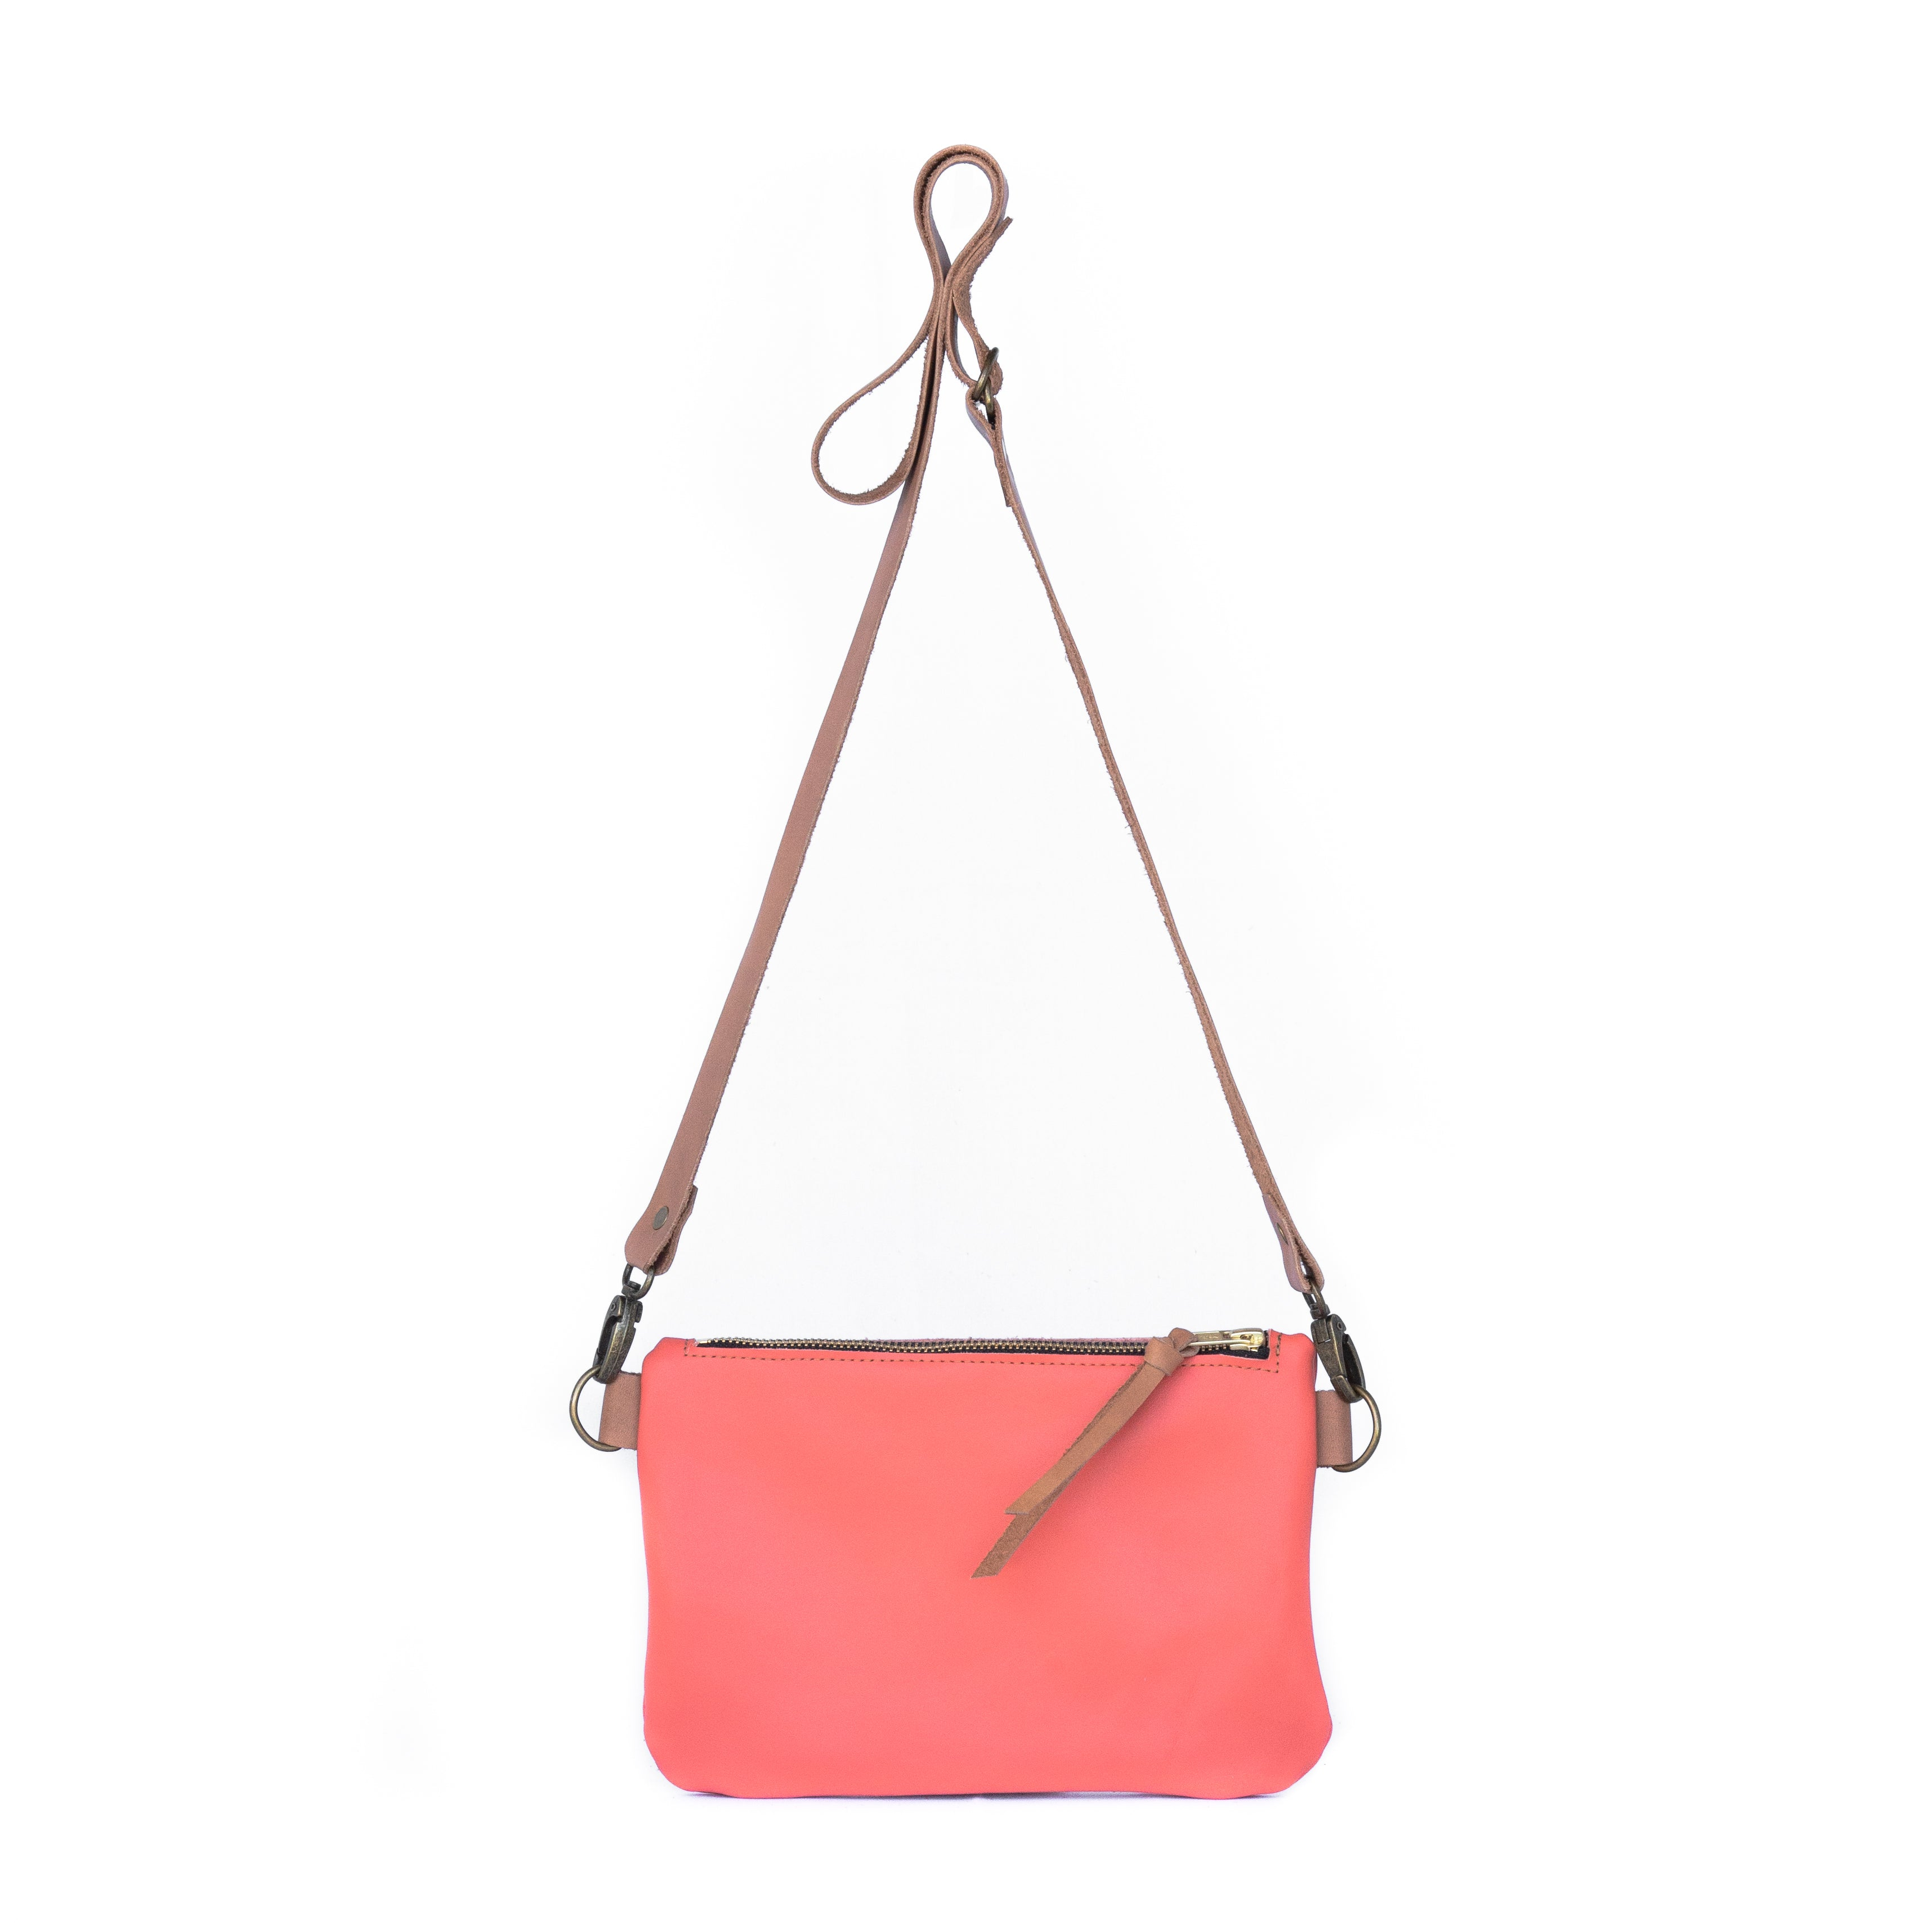 The Dime Bag in Electric Salmon Leather - handcrafted by Market Canvas Leather in Tofino, BC, Canada